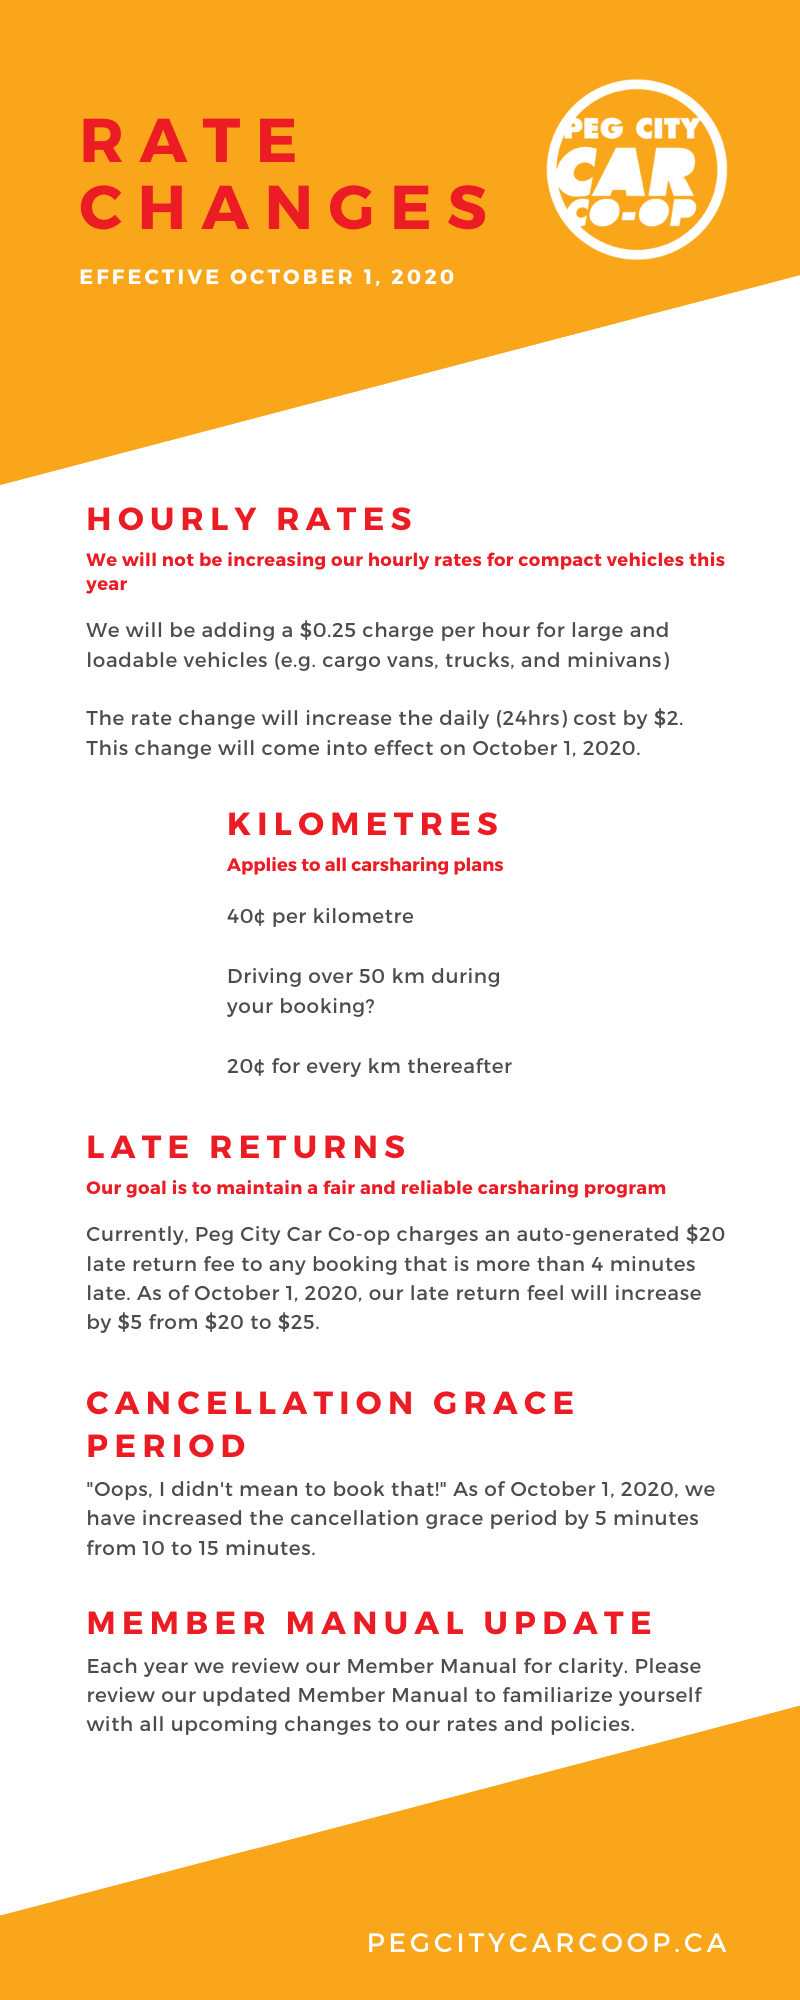 2020 Rate changes for Peg City Car Co-op. infographic.